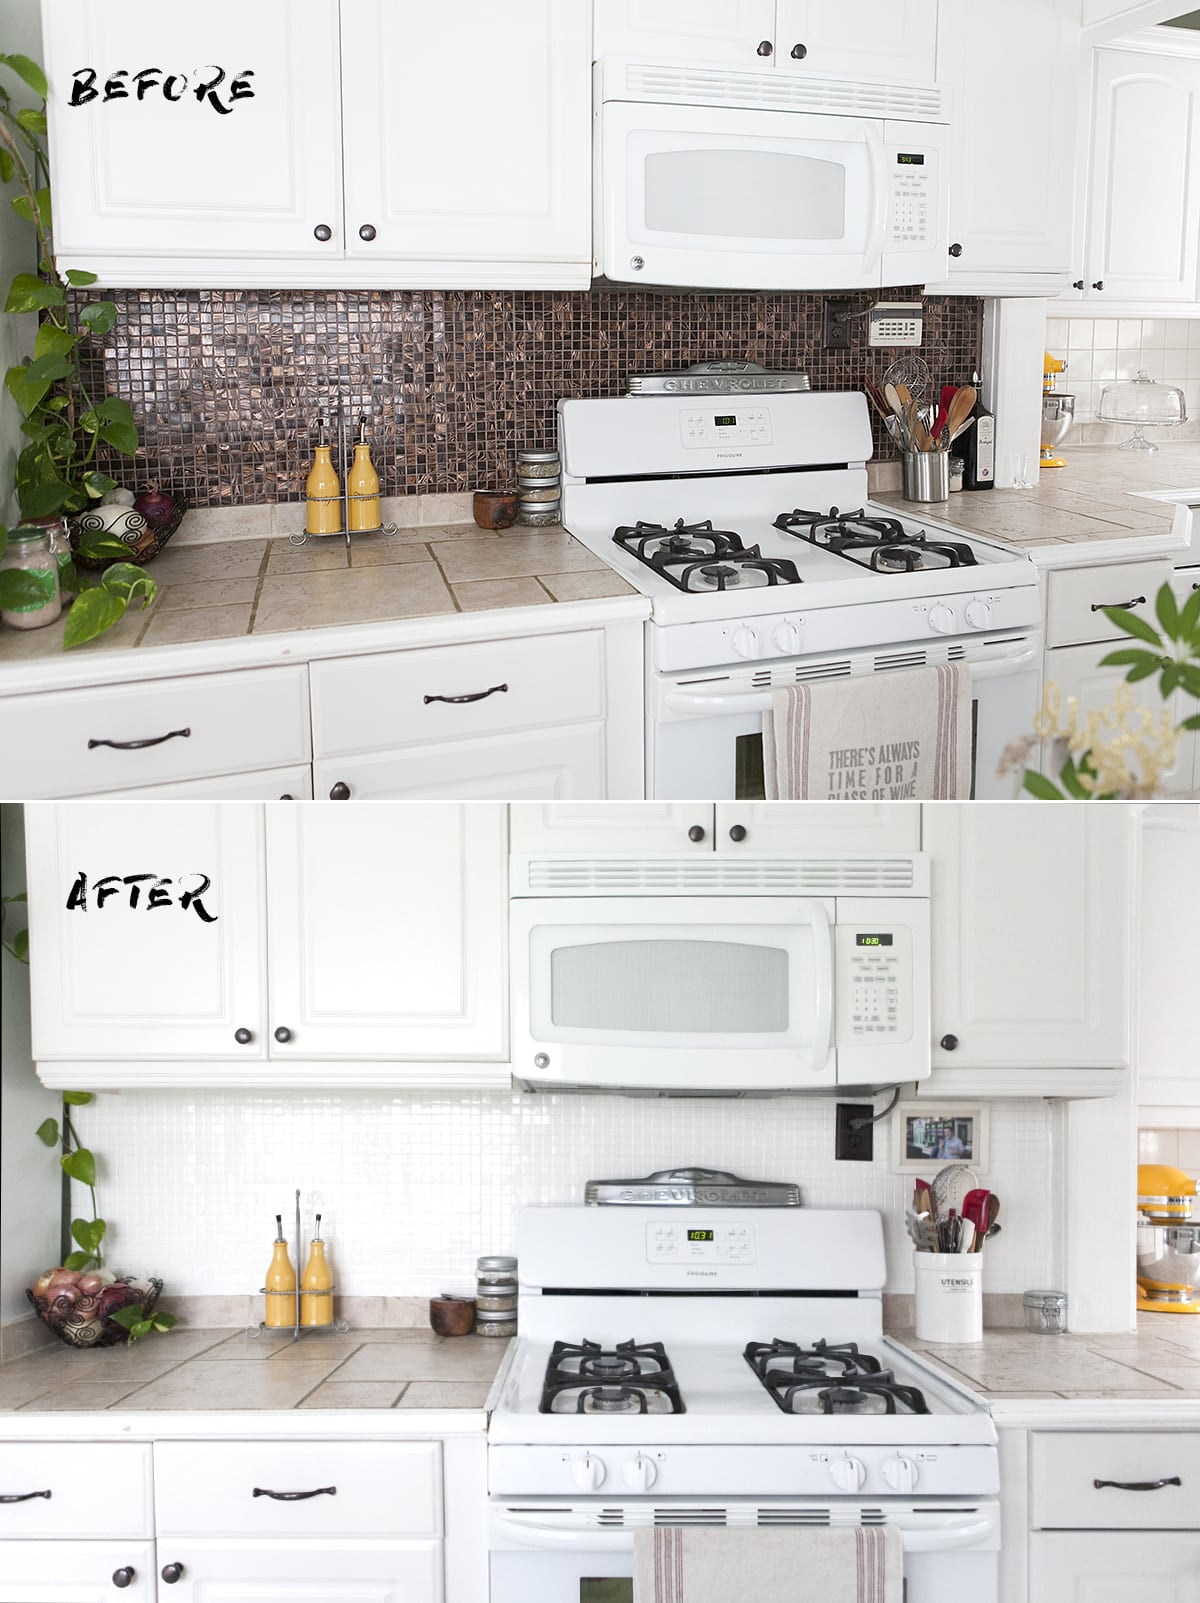 How To Paint A Tile Backsplash, Update Kitchen Backsplash Quickly, Epoxy  Paint Ceramic Tile